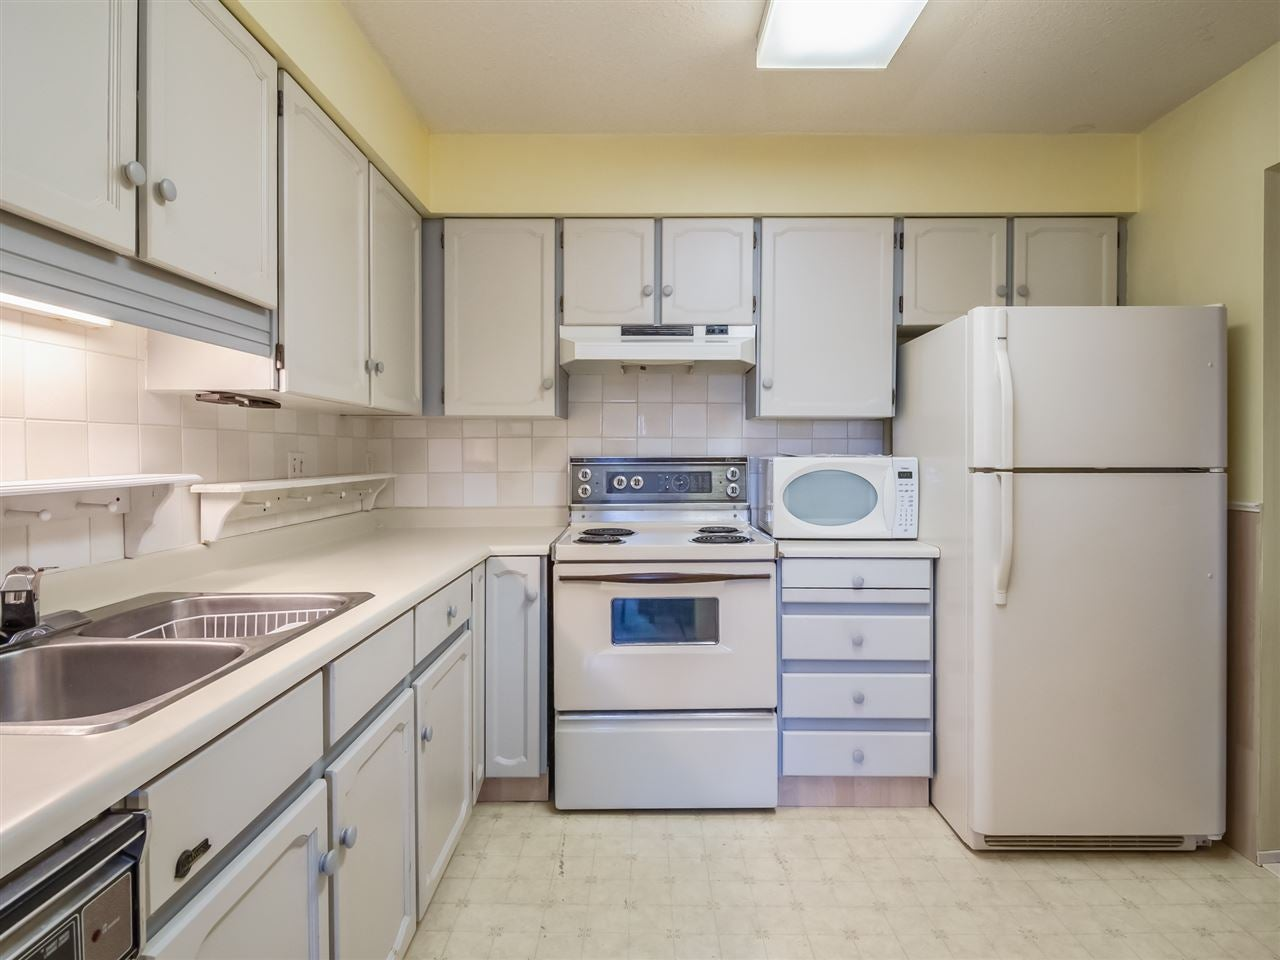 202 32070 PEARDONVILLE ROAD - Abbotsford West Apartment/Condo for sale, 2 Bedrooms (R2521030)